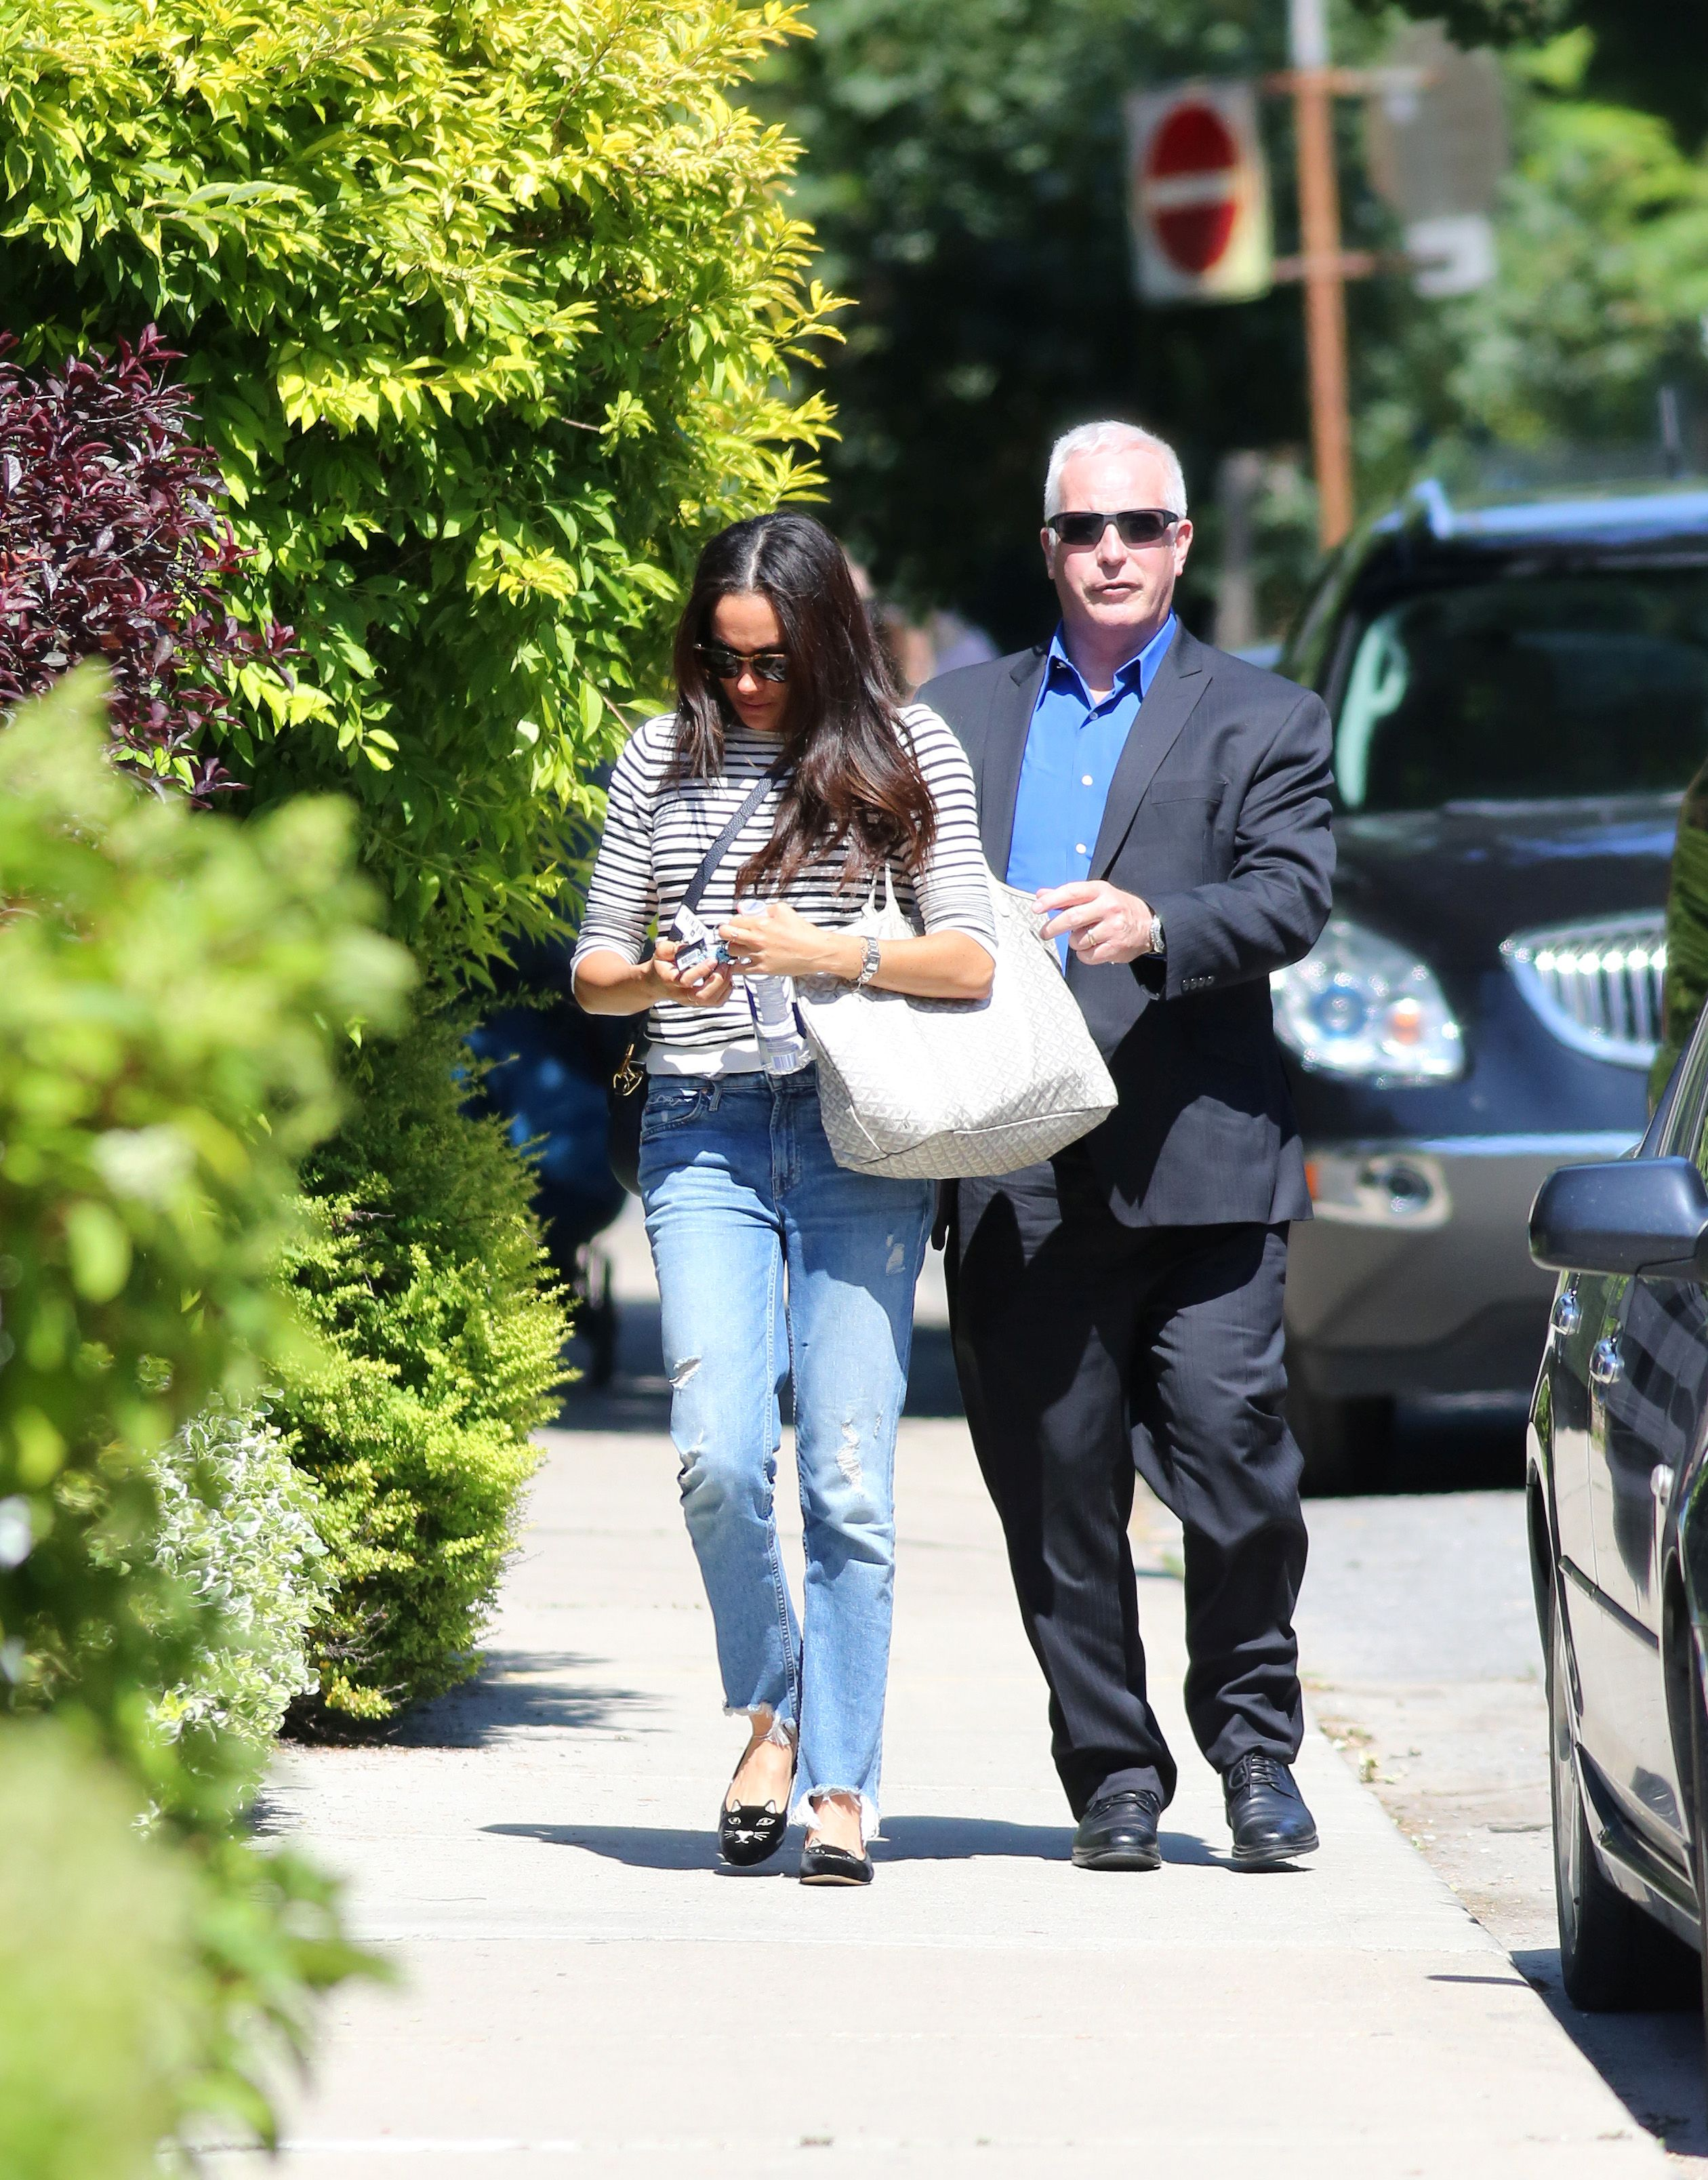 EXCLUSIVE: **PREMIUM EXCLUSIVE RATES, MUST AGREE FEES** Meghan Markle arrives back at her Toronto home after spending ten days in London. As she her arrives home she drops her cell on her security guard foot. Also spotted wearing cat slippers, possibly Kitty Flats sold by Charlotte Olympia retail for US$495. Her SUV was spotted at Toronto International in a high security zone reserved for the highest VIP's. <P> Pictured: Meghan Markle <B>Ref: SPL1495571  060717   EXCLUSIVE</B><BR/> Picture by: Splash News<BR/> </P><P> <B>Splash News and Pictures</B><BR/> Los Angeles:	310-821-2666<BR/> New York:	212-619-2666<BR/> London:	870-934-2666<BR/> photodesk@splashnews.com<BR/> </P>